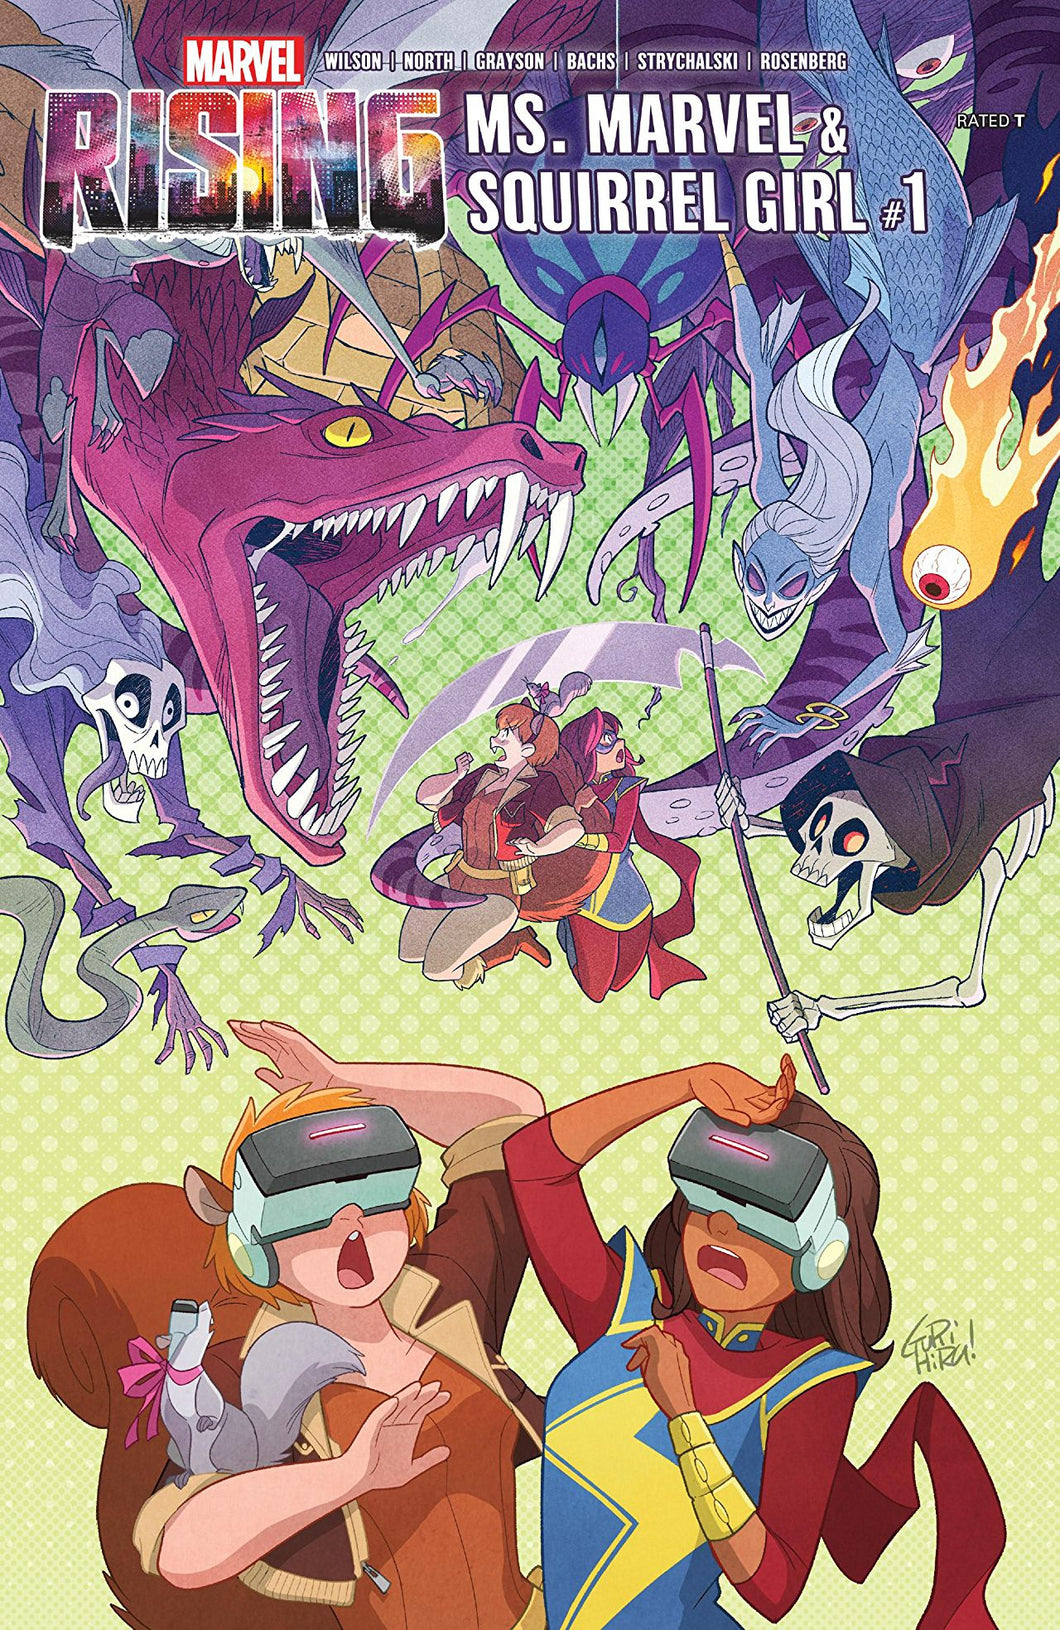 MARVEL RISING MS MARVEL SQUIRREL GIRL #1 (08/01/2018)